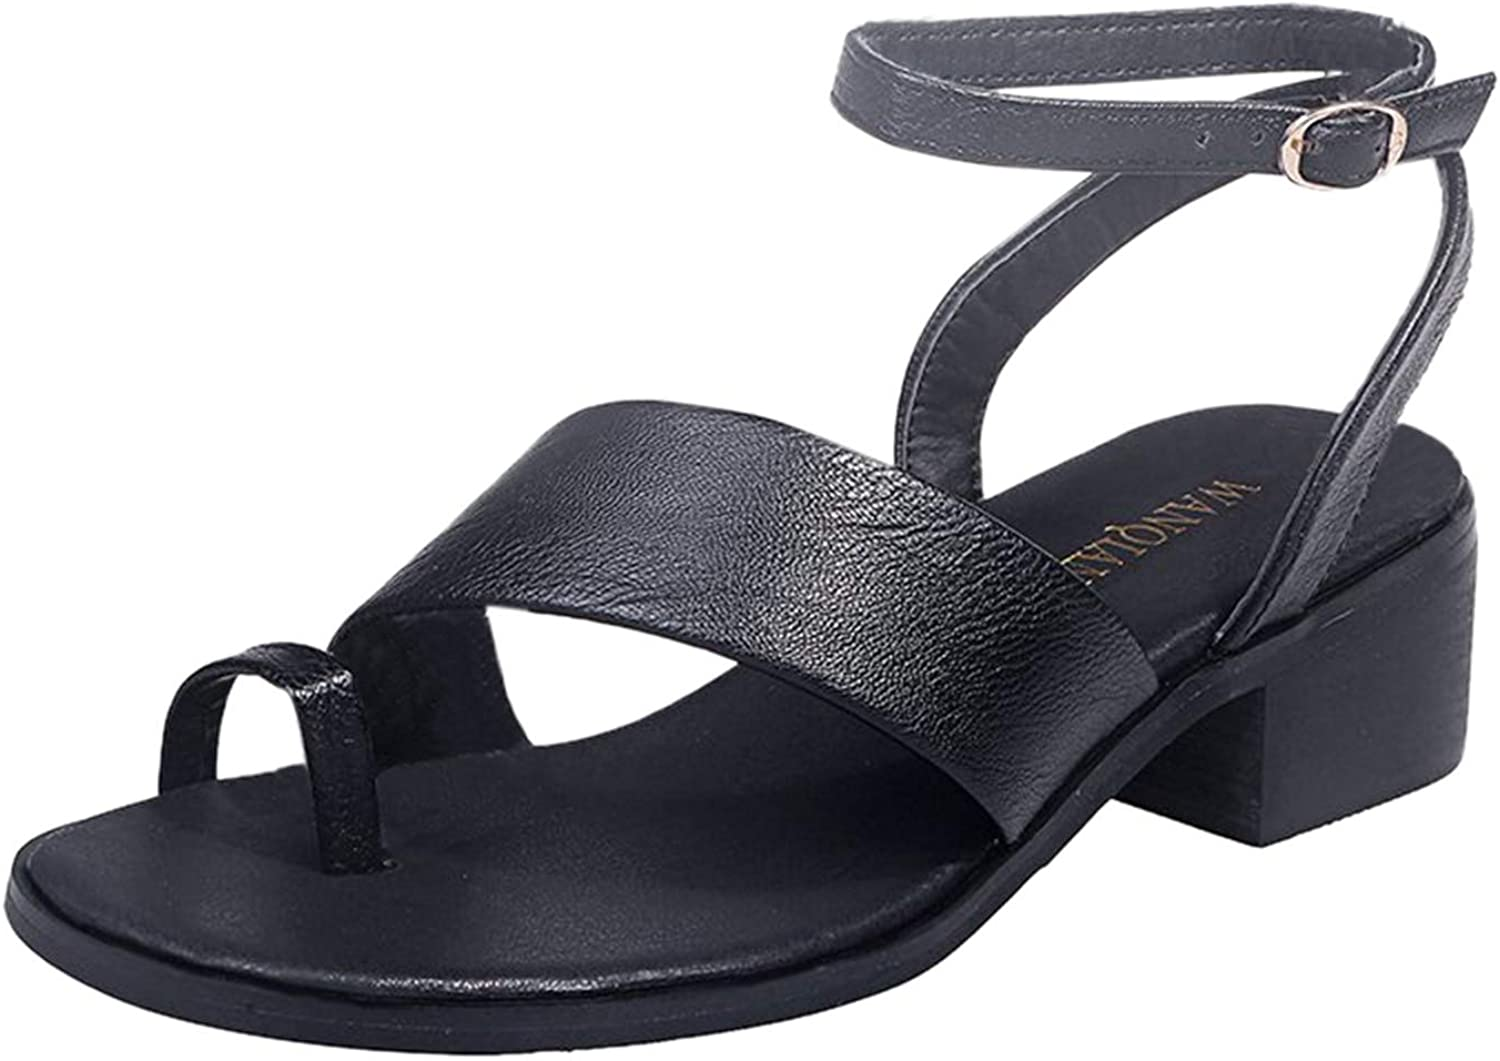 Women's One Detroit Mall Band Ankle Strap Sandals Long-awaited and Soft Flat